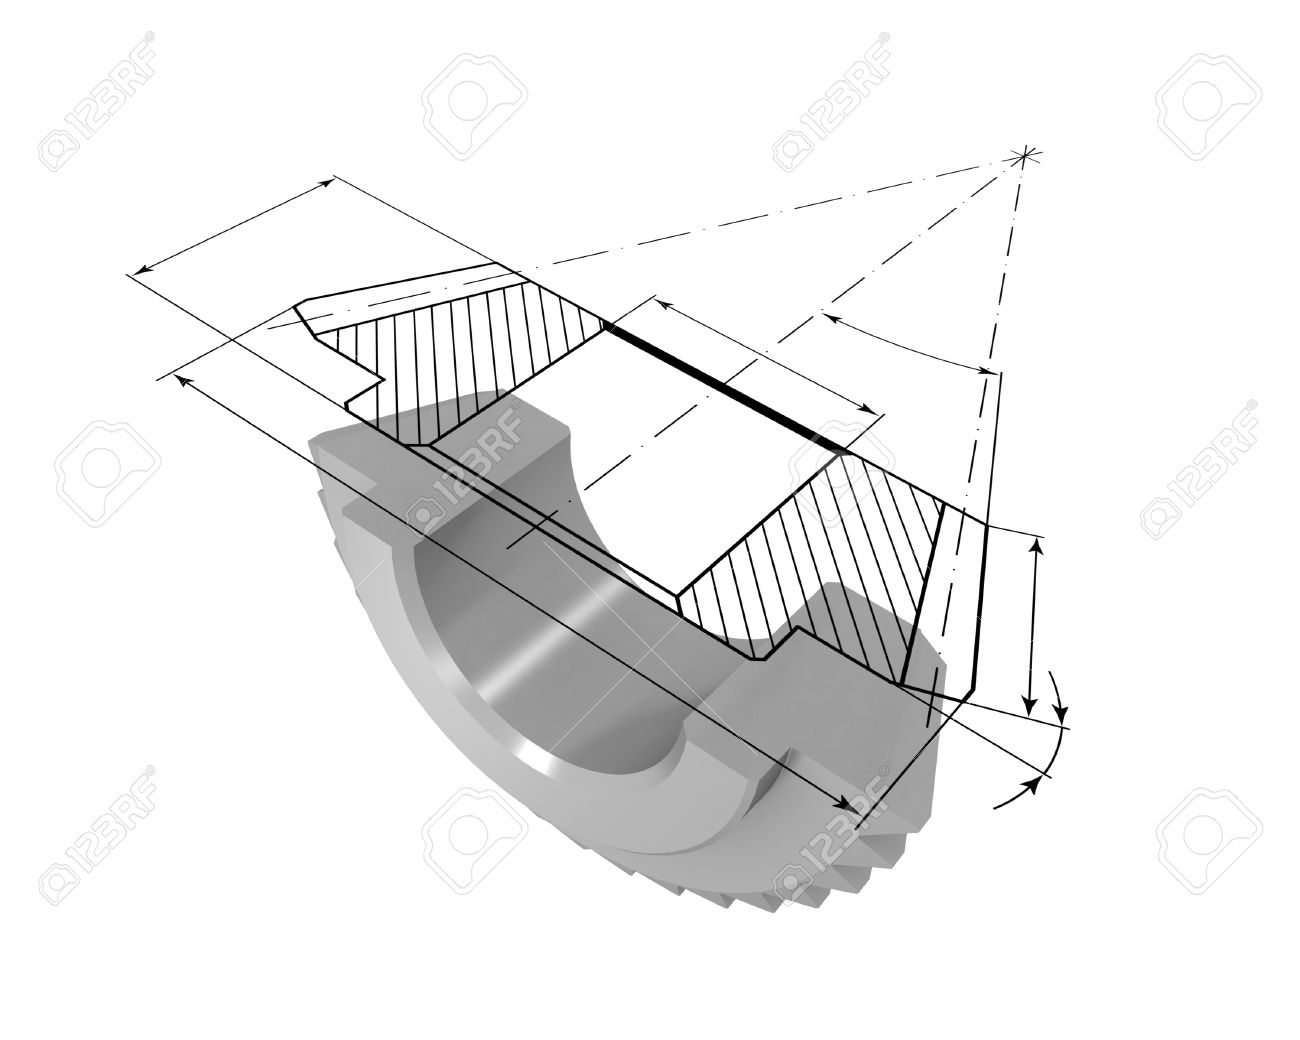 Three-dimensional model bevel gear in the section. On top of the model is projected onto the drawing. - 7788908